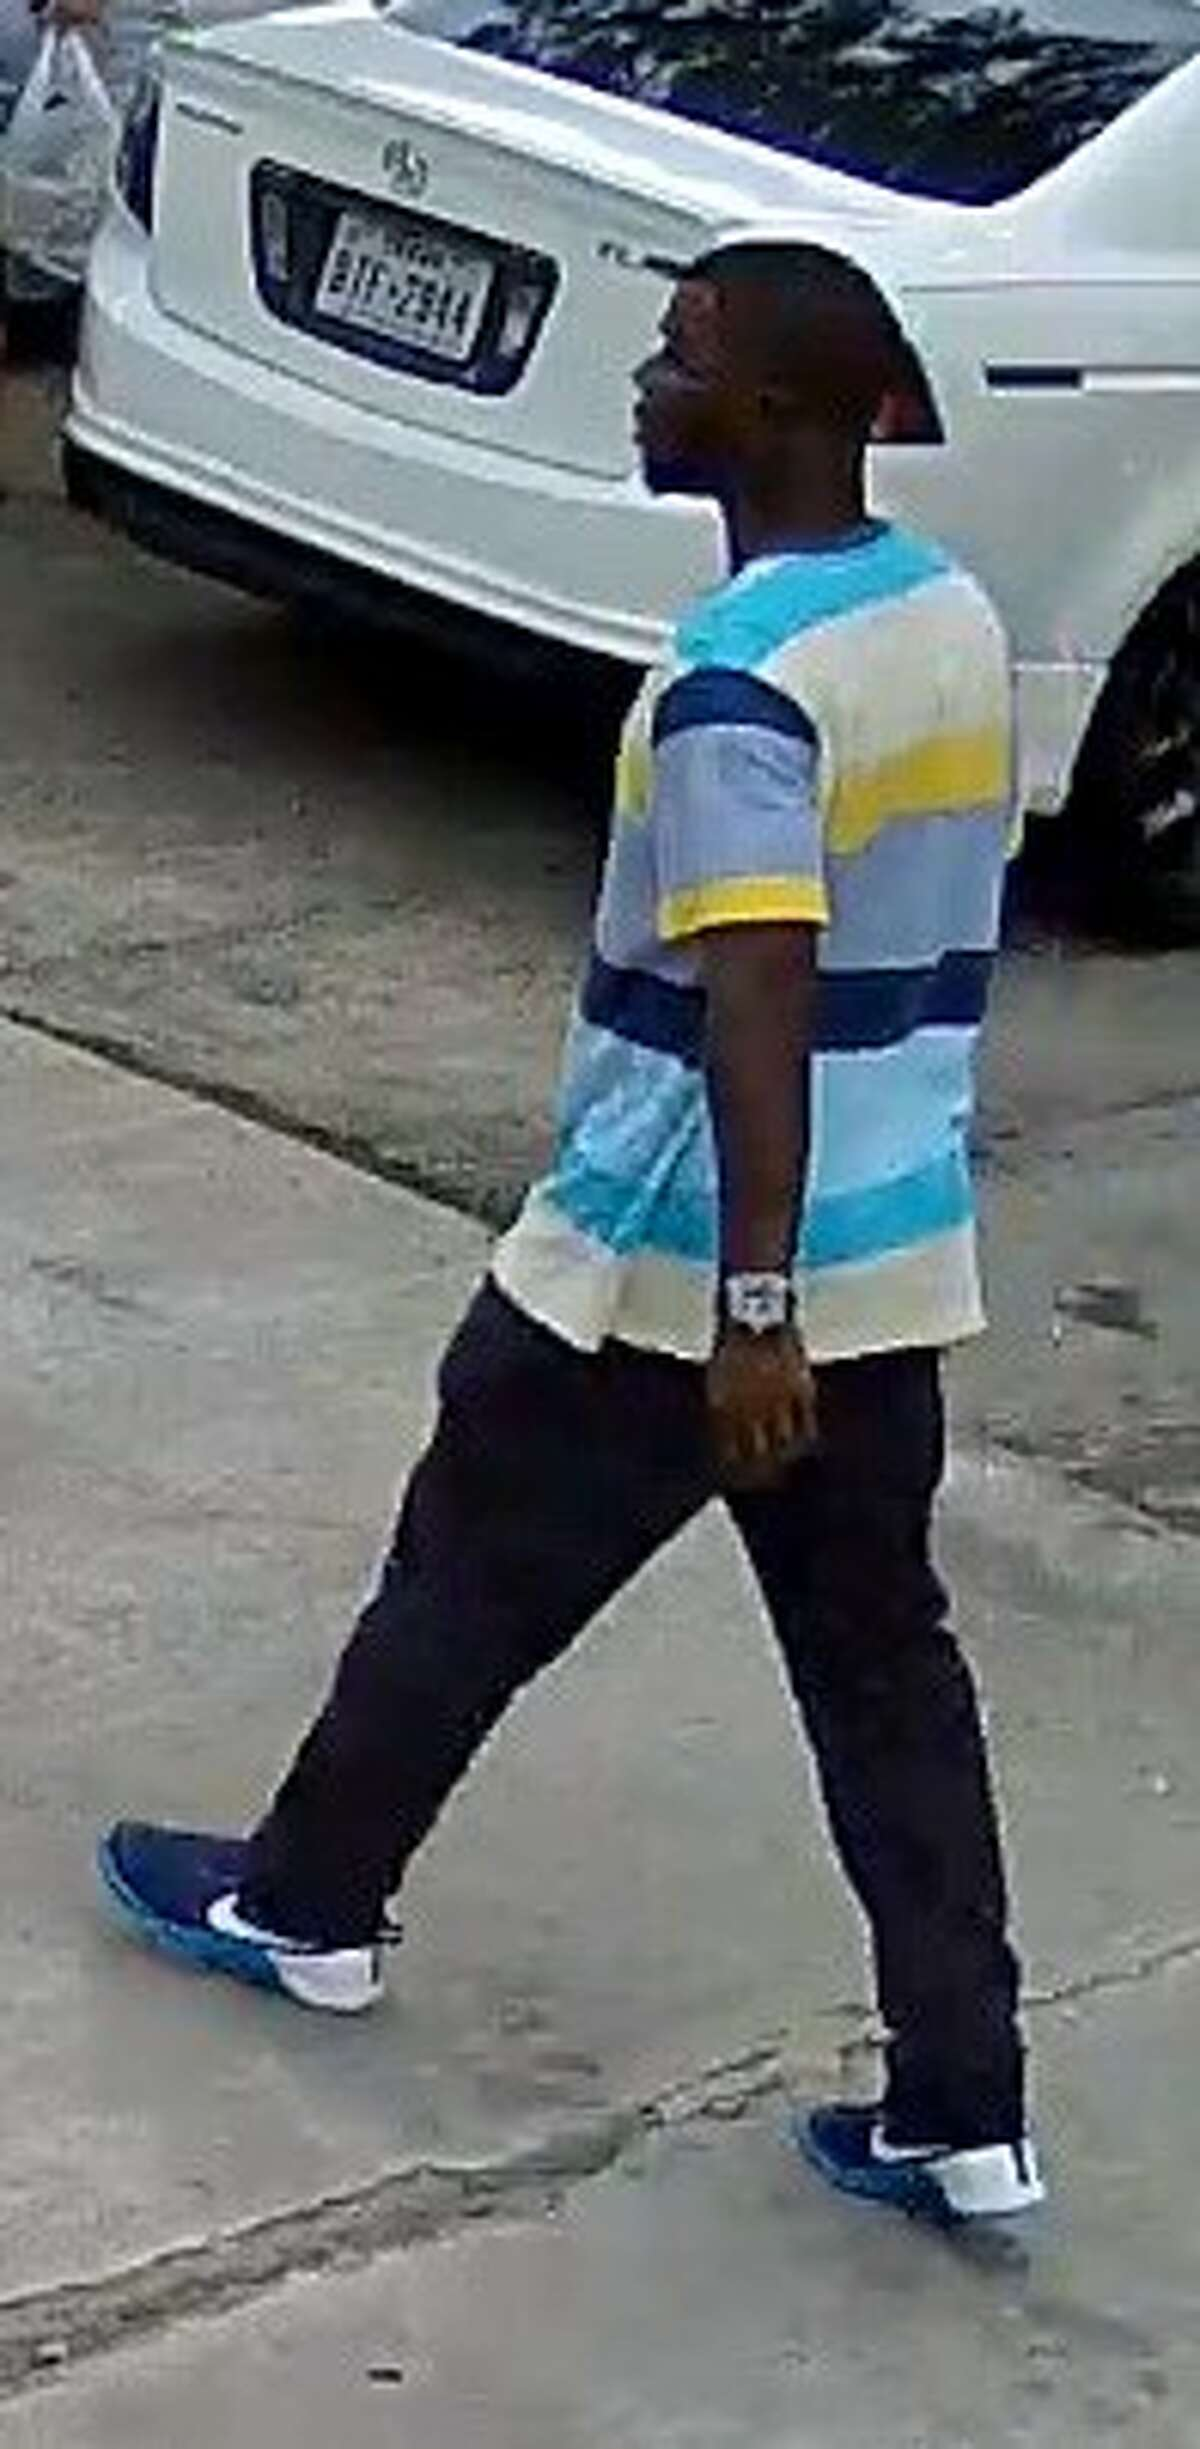 Surveillance photograph of a suspect who robbed a man as he returned home from a grocery store about 4:20 p.m. June 7, 2016, in the 8300 block of Leamont in southwest Houston. (Houston Police Department)